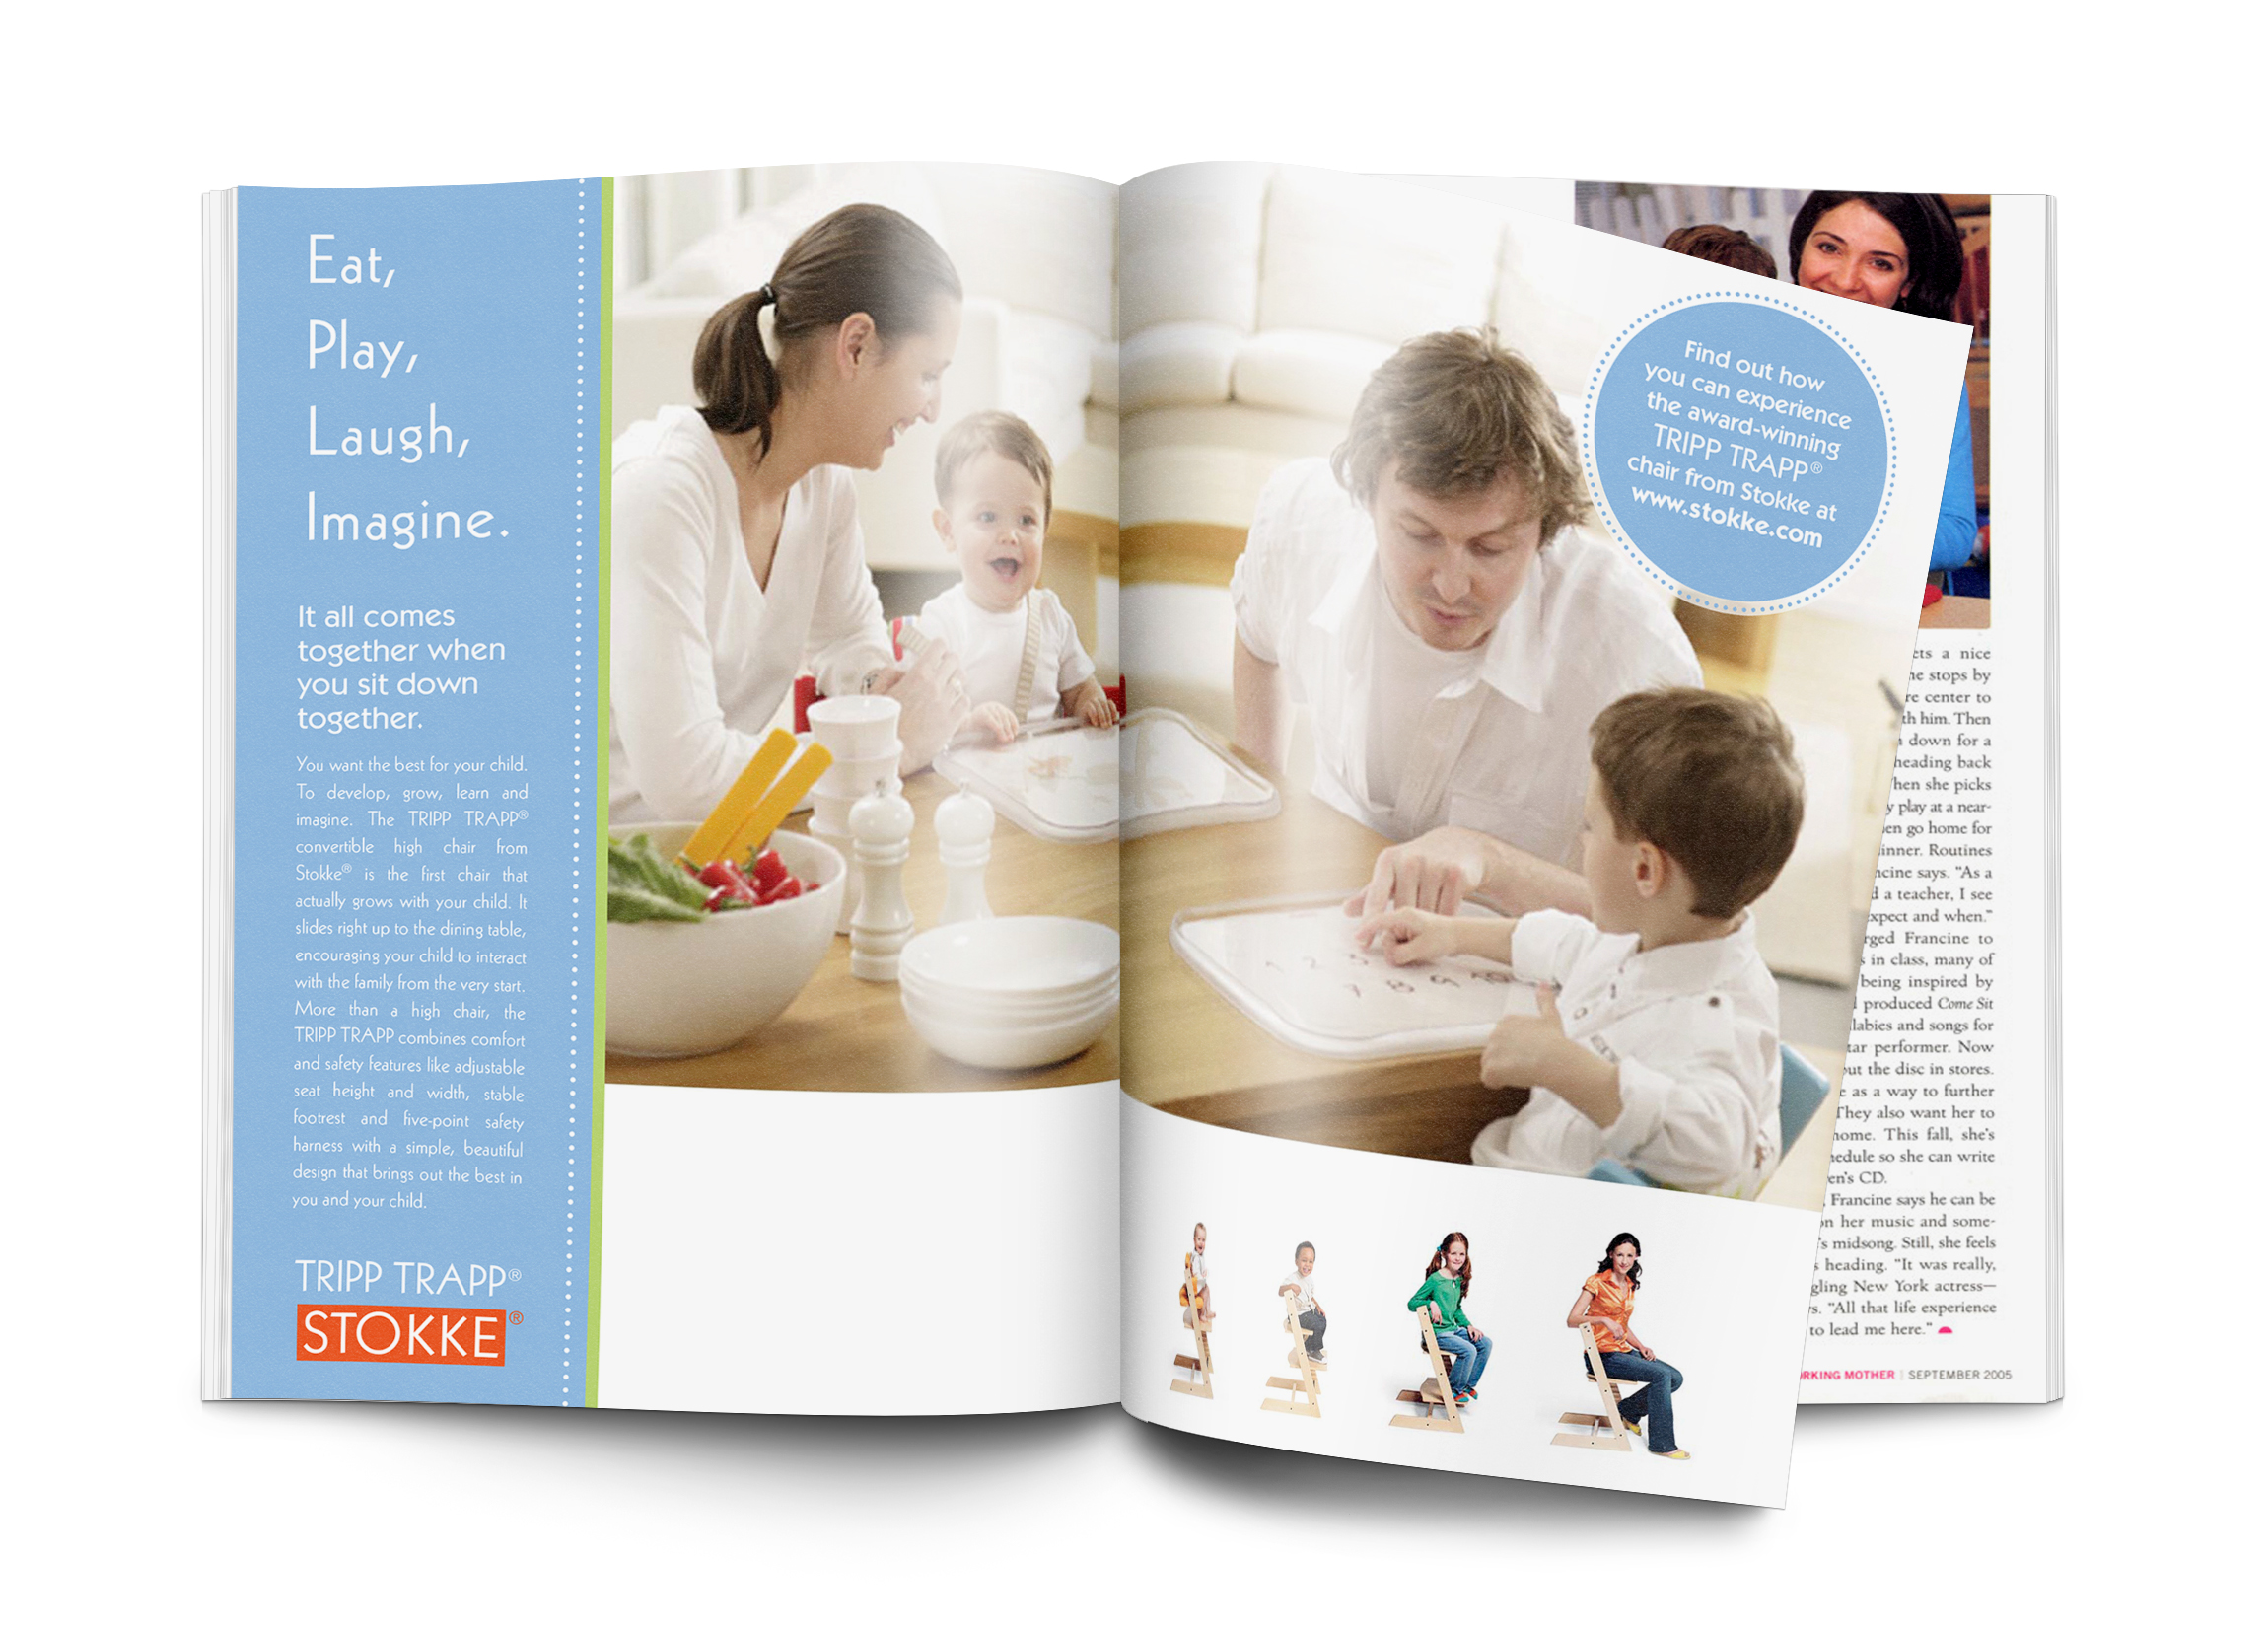 Stokke Tripp Trapp Print Ads on Behance